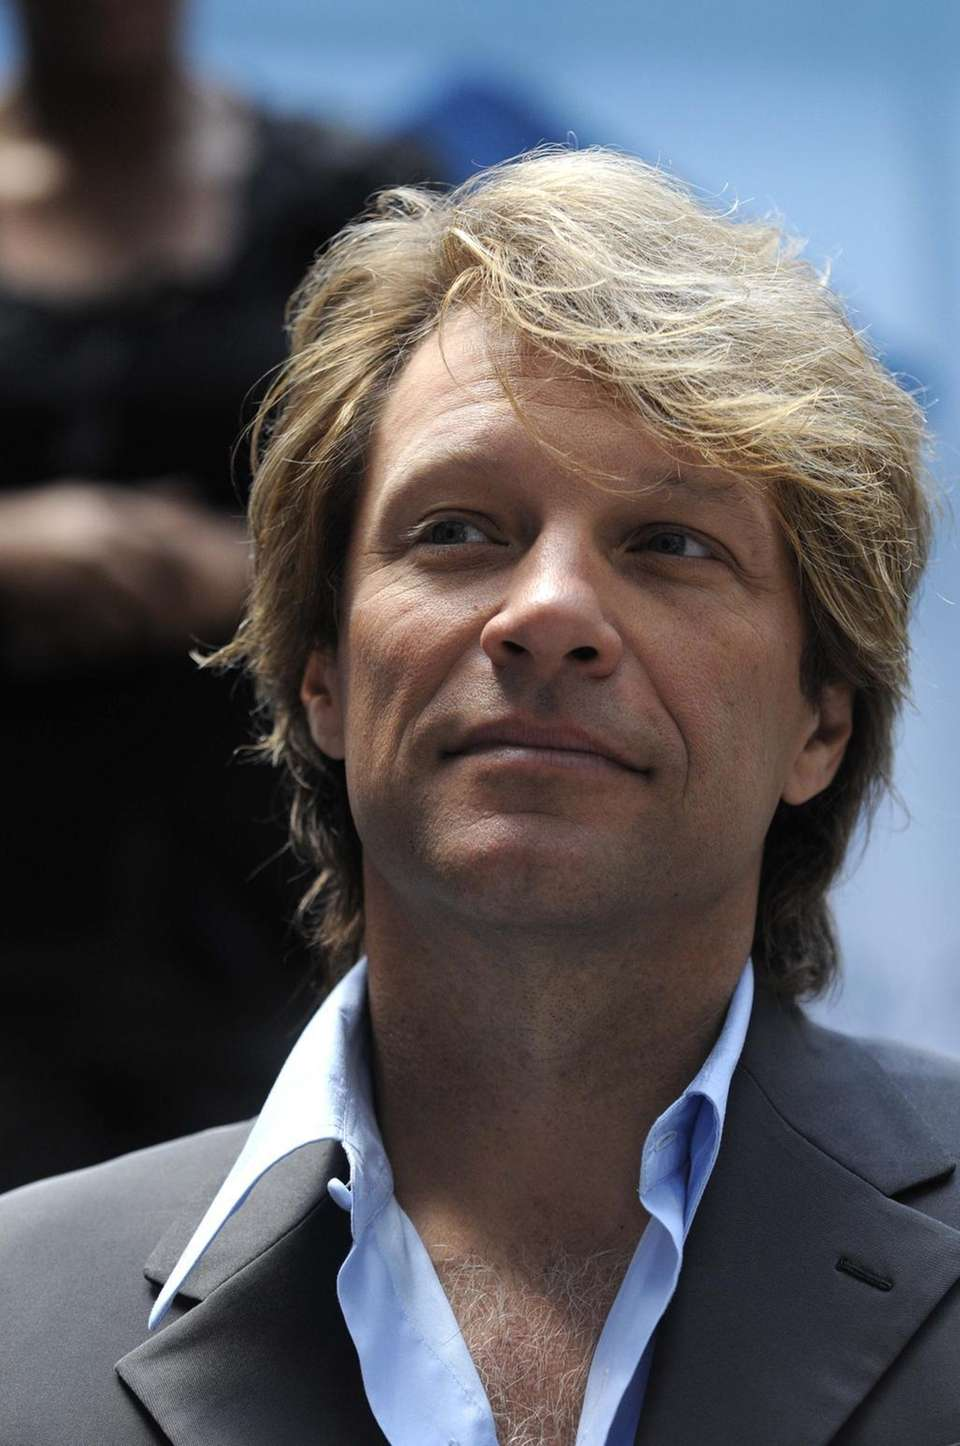 Stage name: Jon Bon Jovi Birth name: John